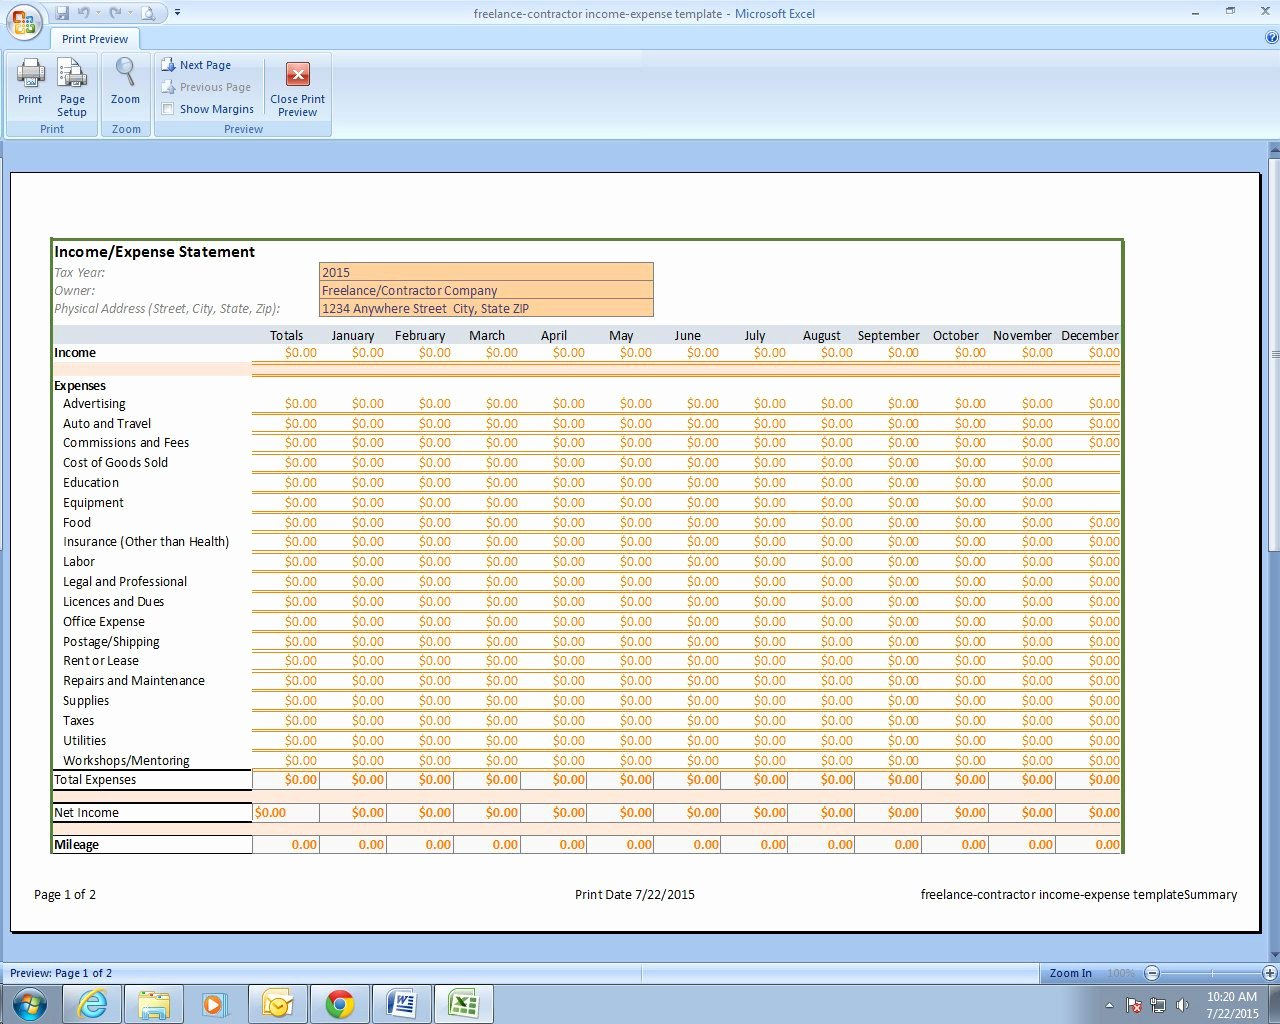 Excel Business Expense Template Beautiful Freelance Grapher In E and Expenses Excel